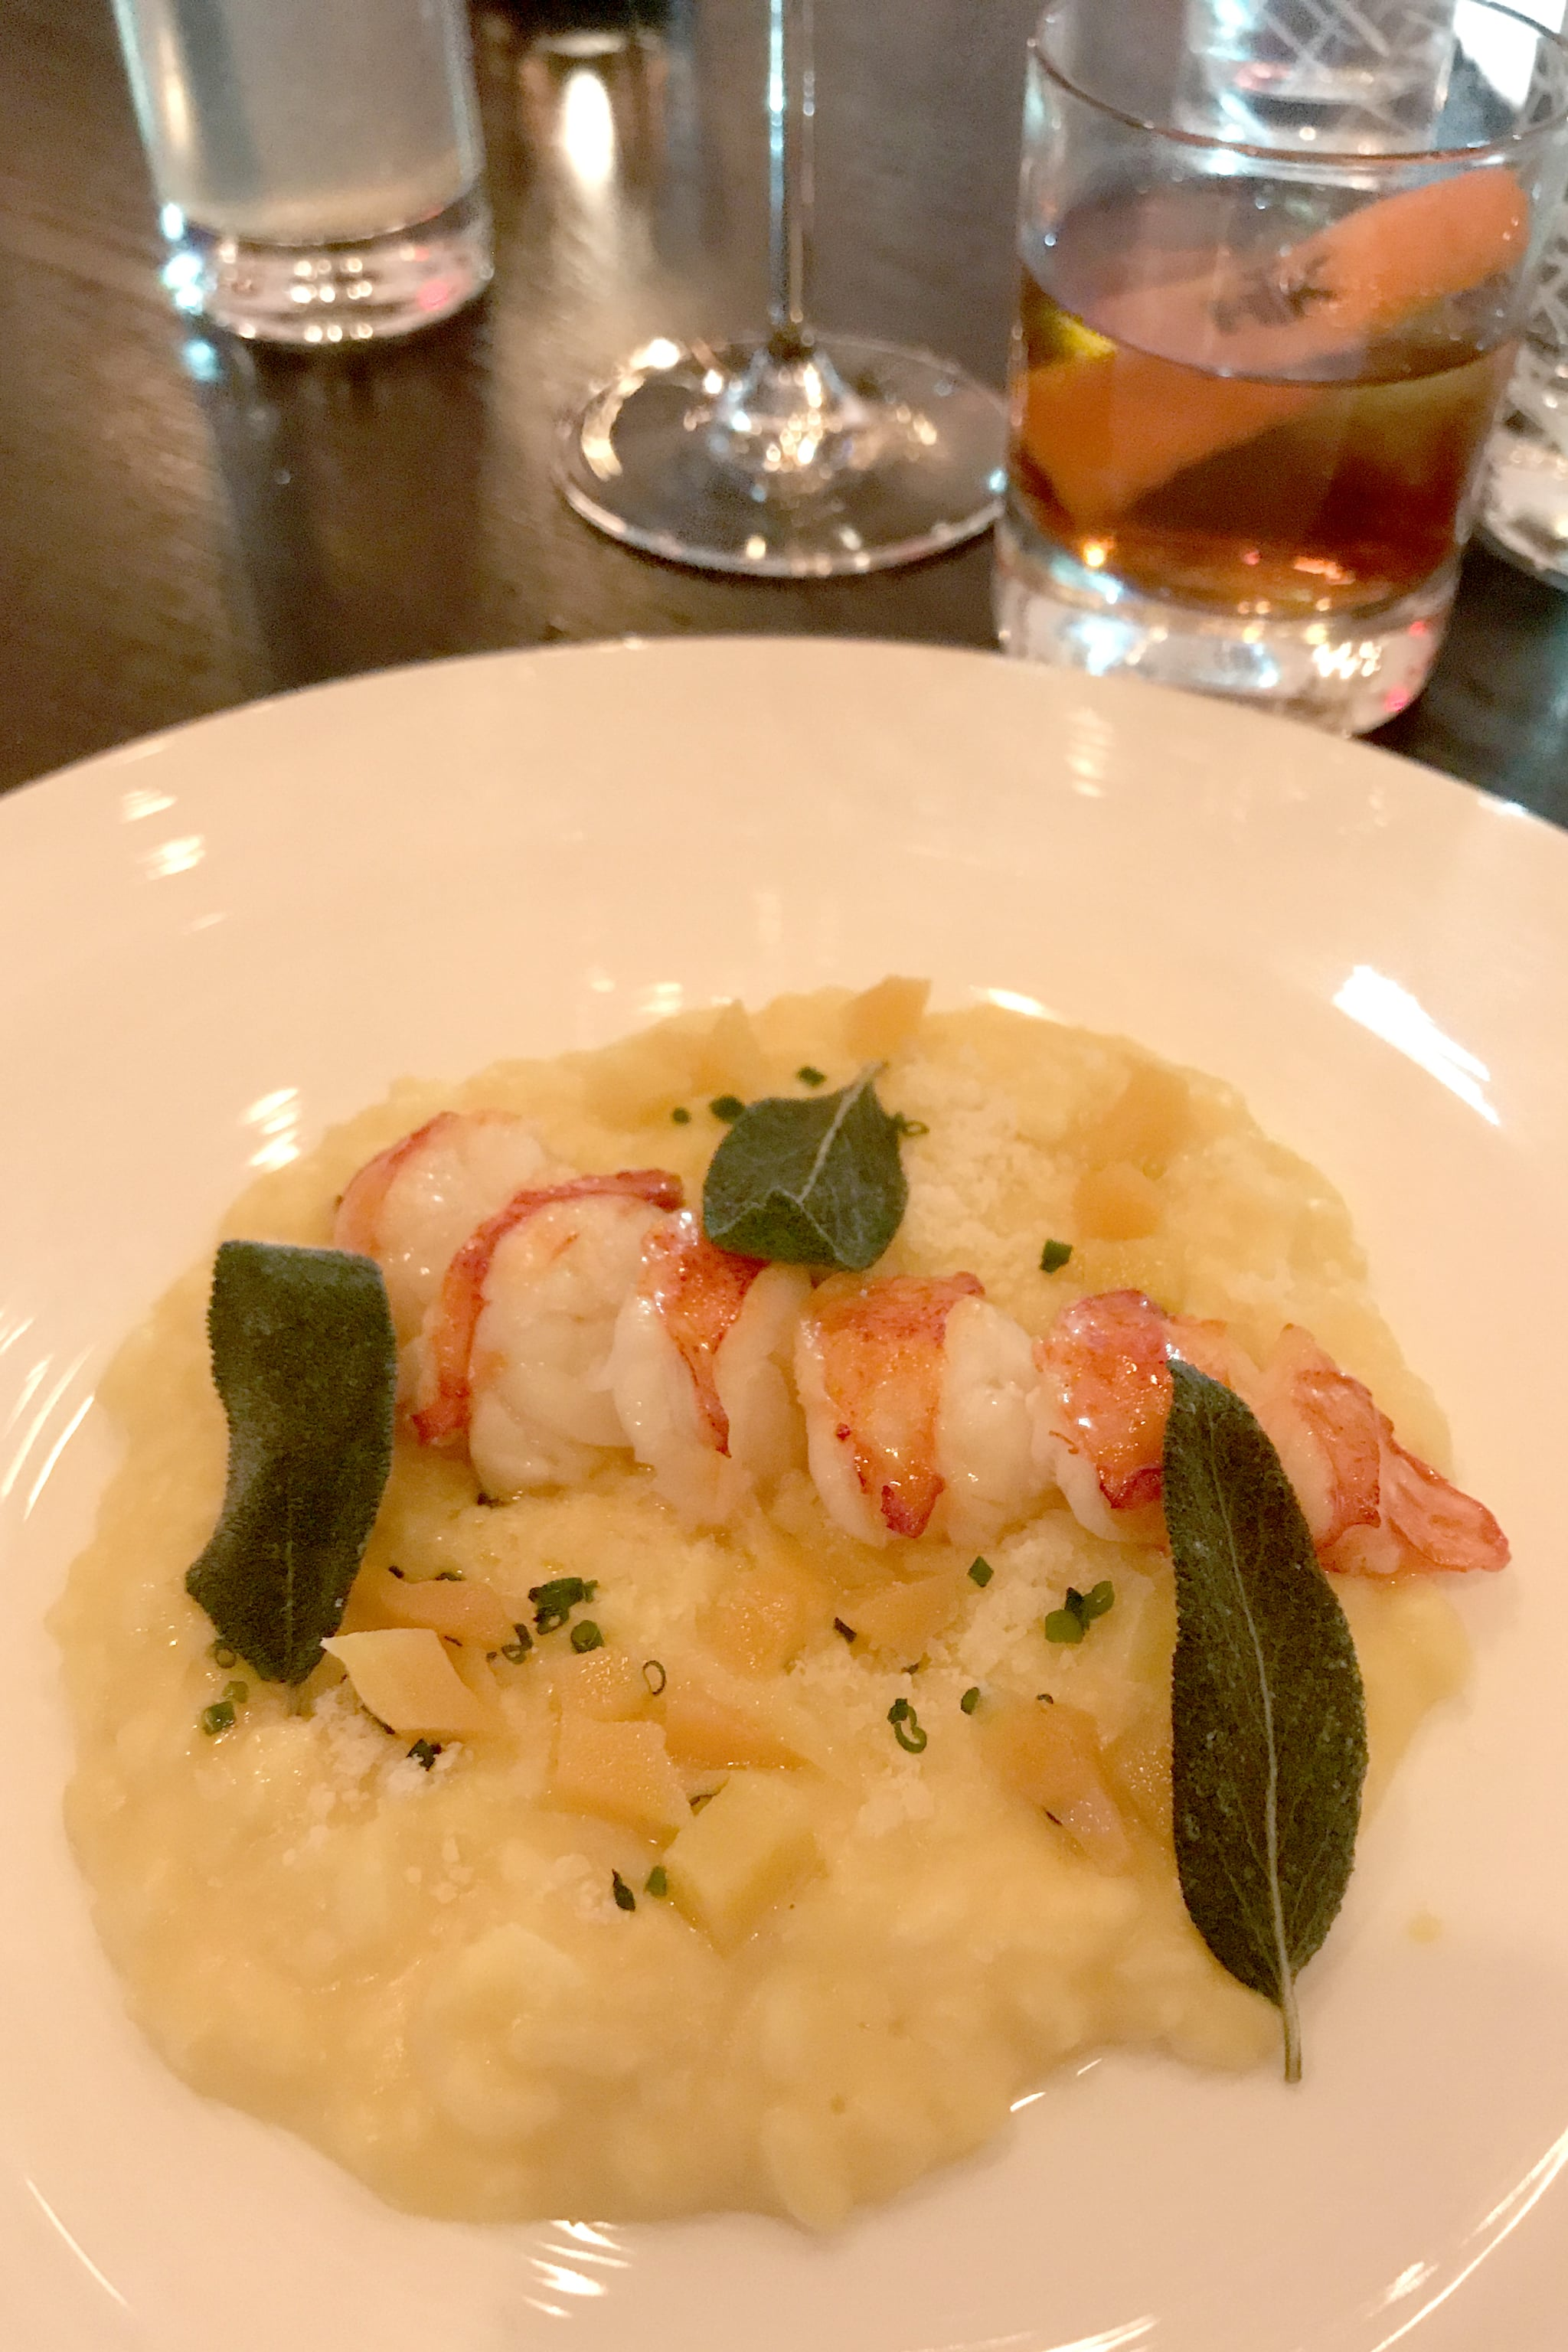 lobster risotto at hells kitchen - Hells Kitchen Menu